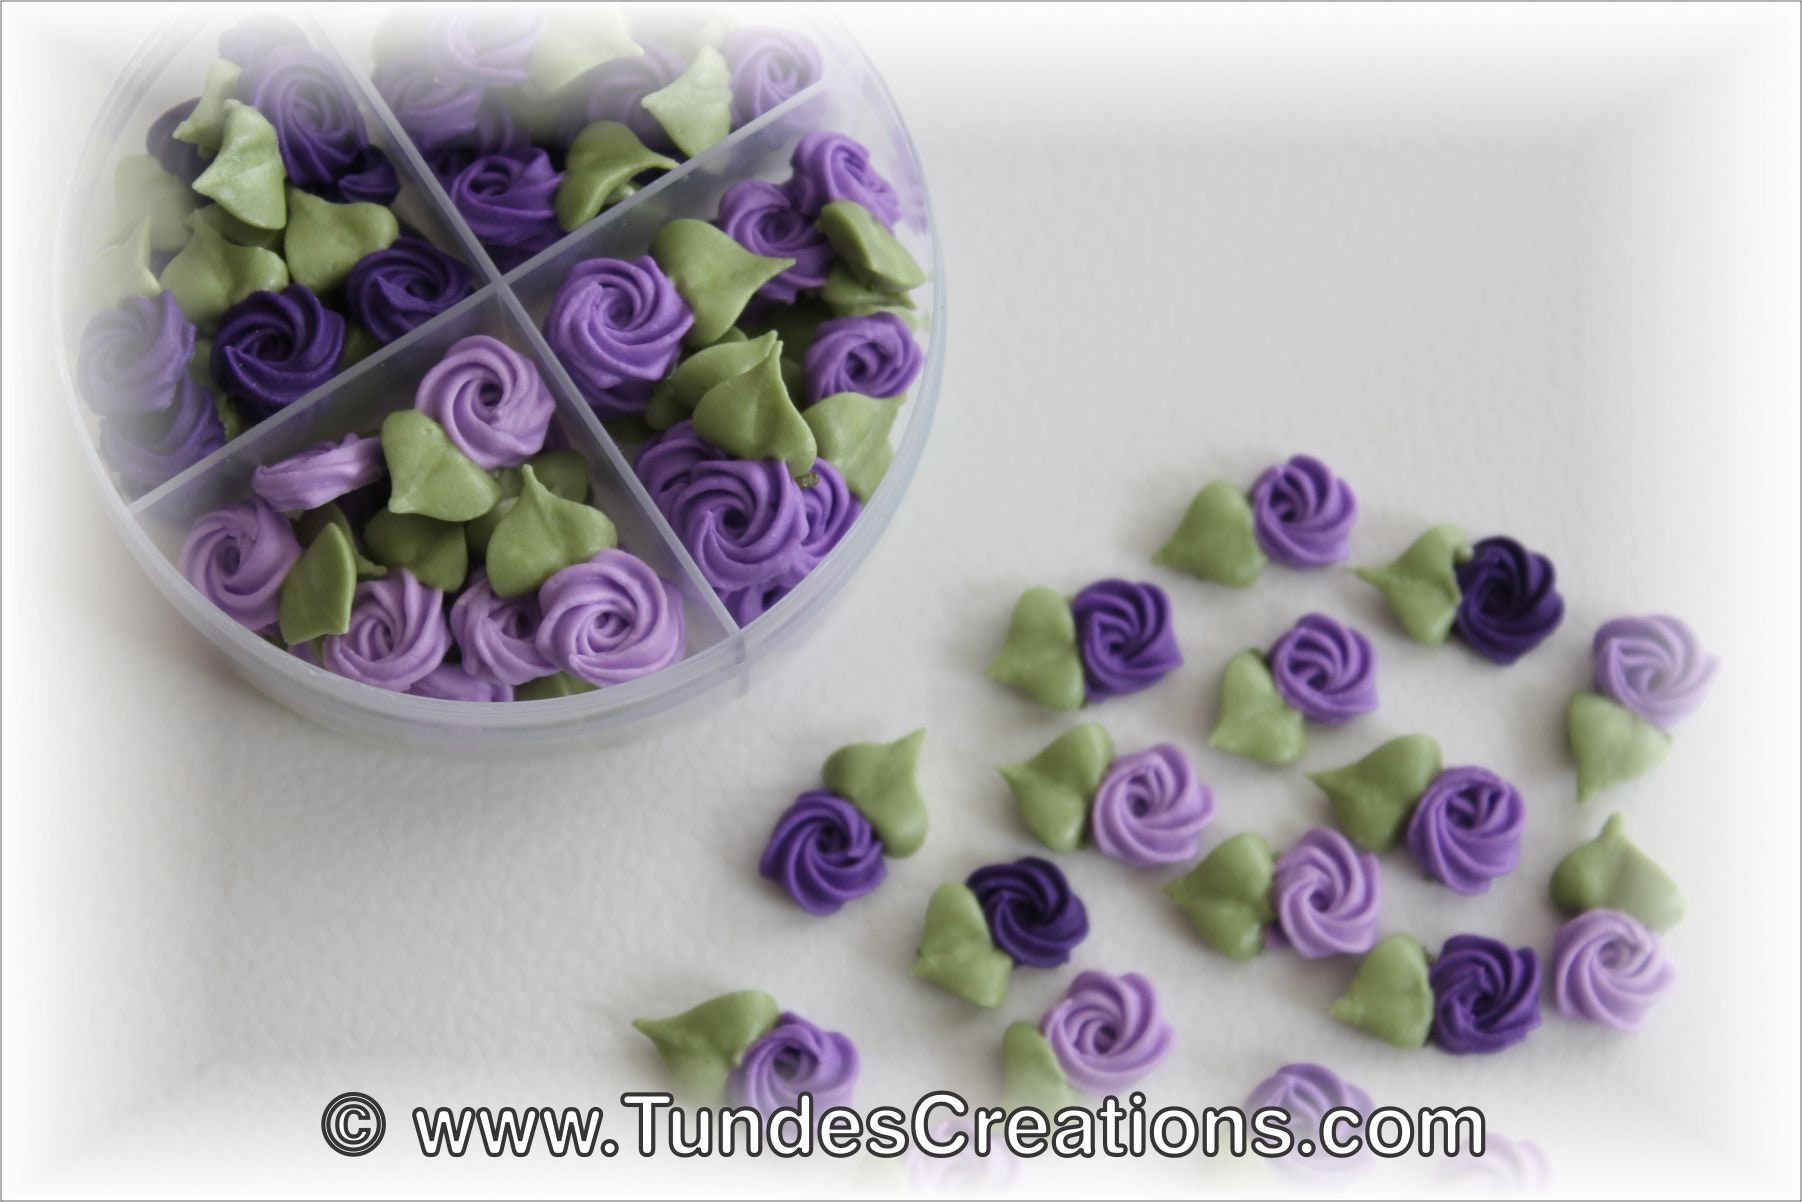 Royal Icing Flowers For Cookie Decorating Swirl Roses With